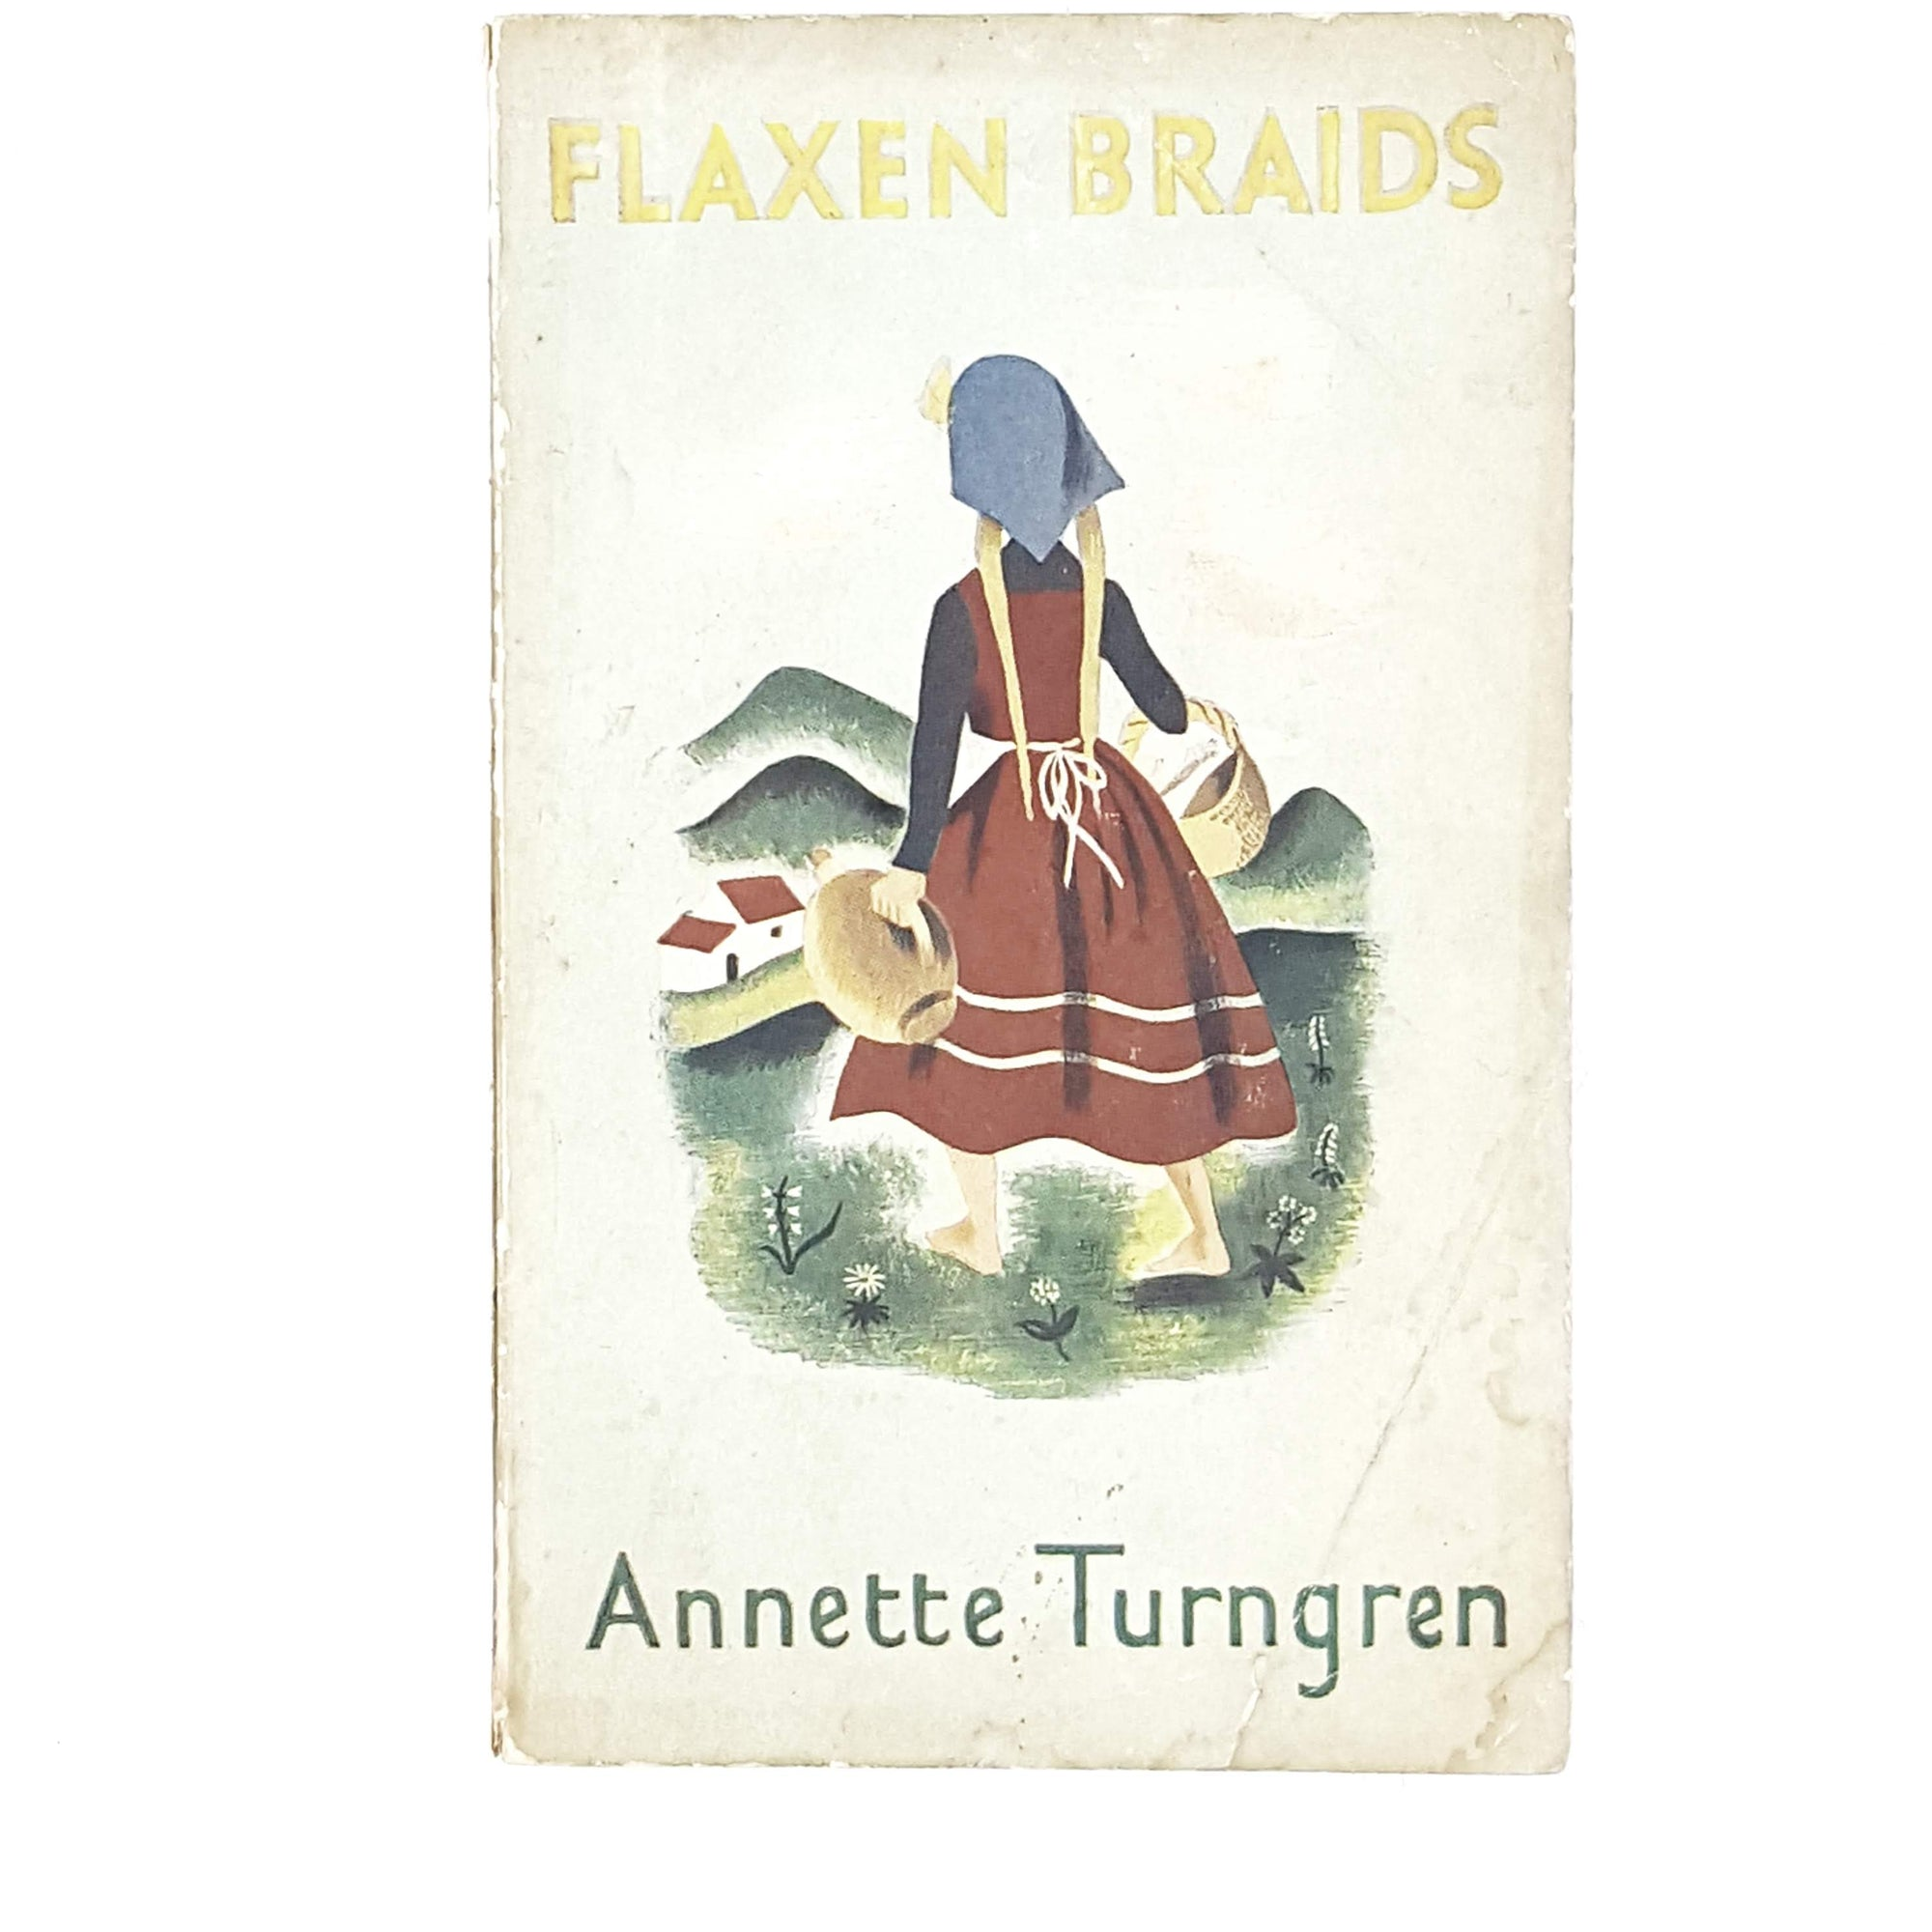 Illustrated Flaxen Braids by Annette Turngren 1945